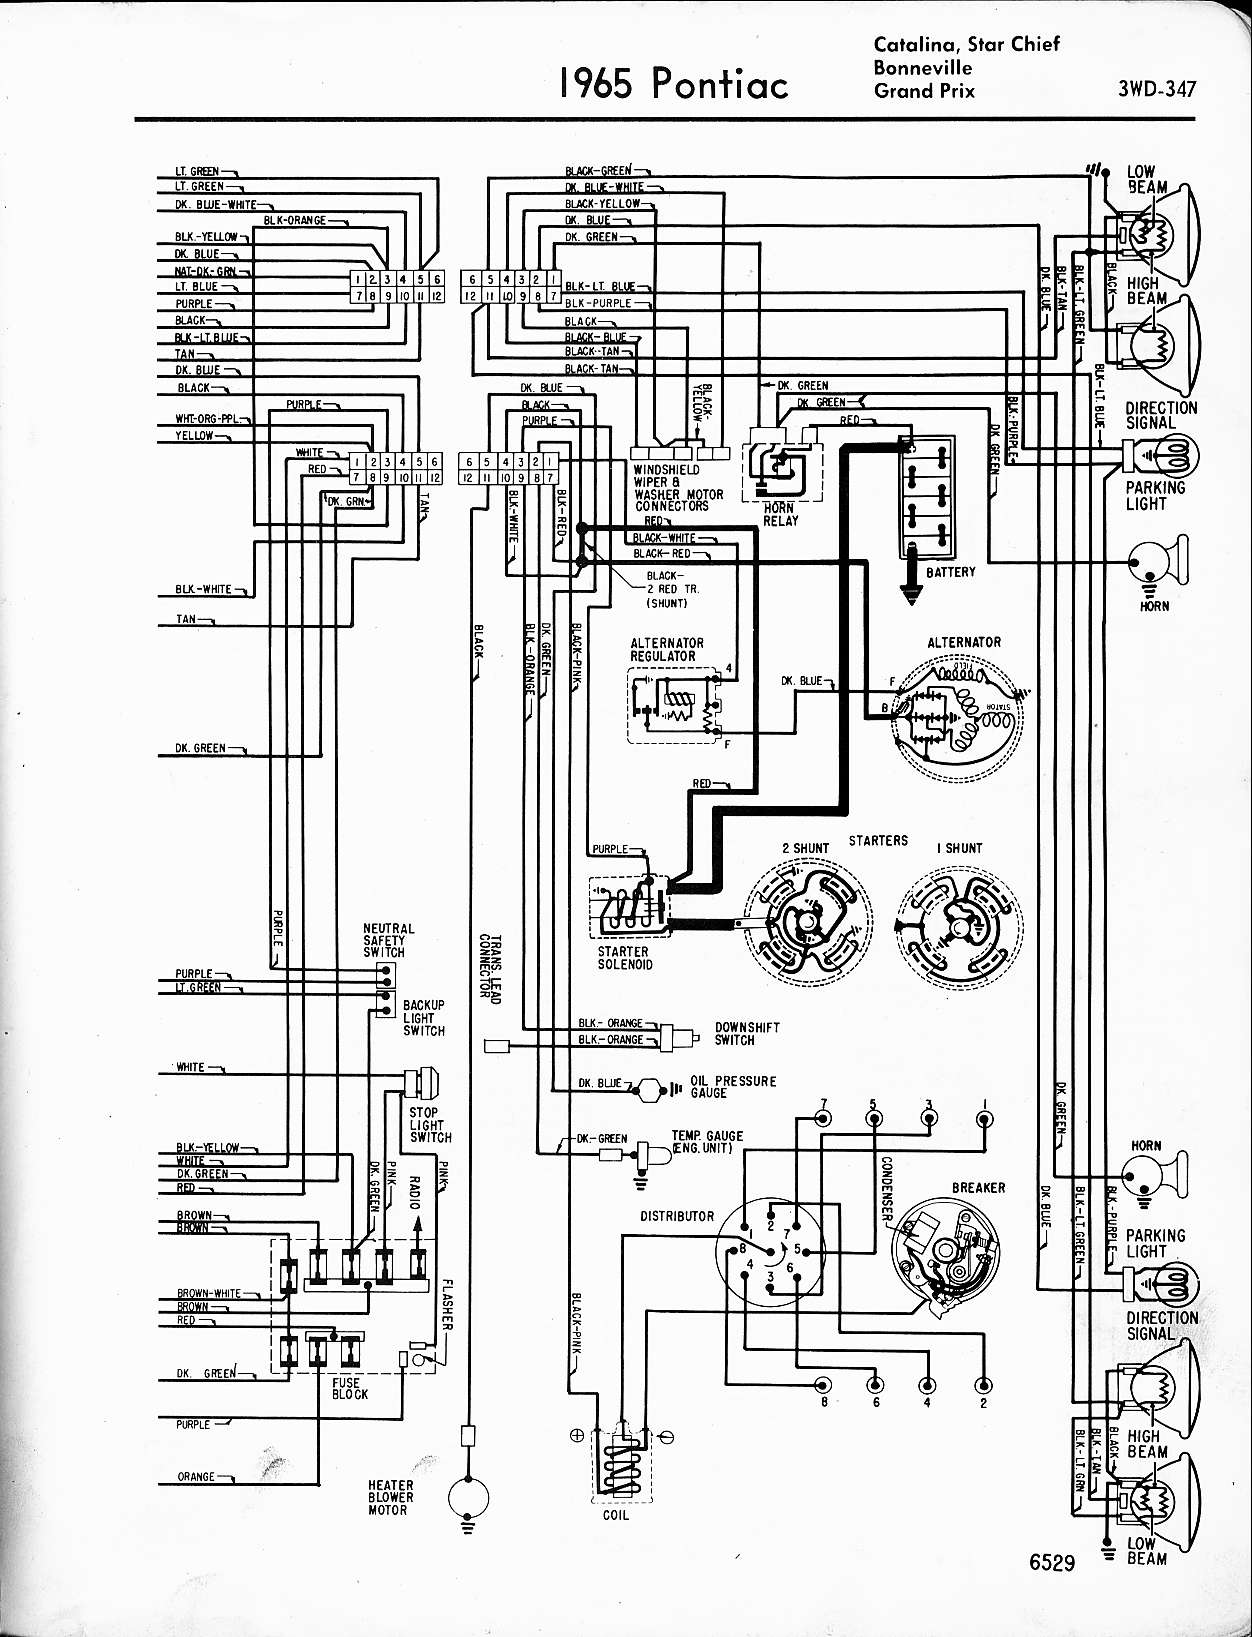 electric le 1996 3 8 pontiac engine diagram